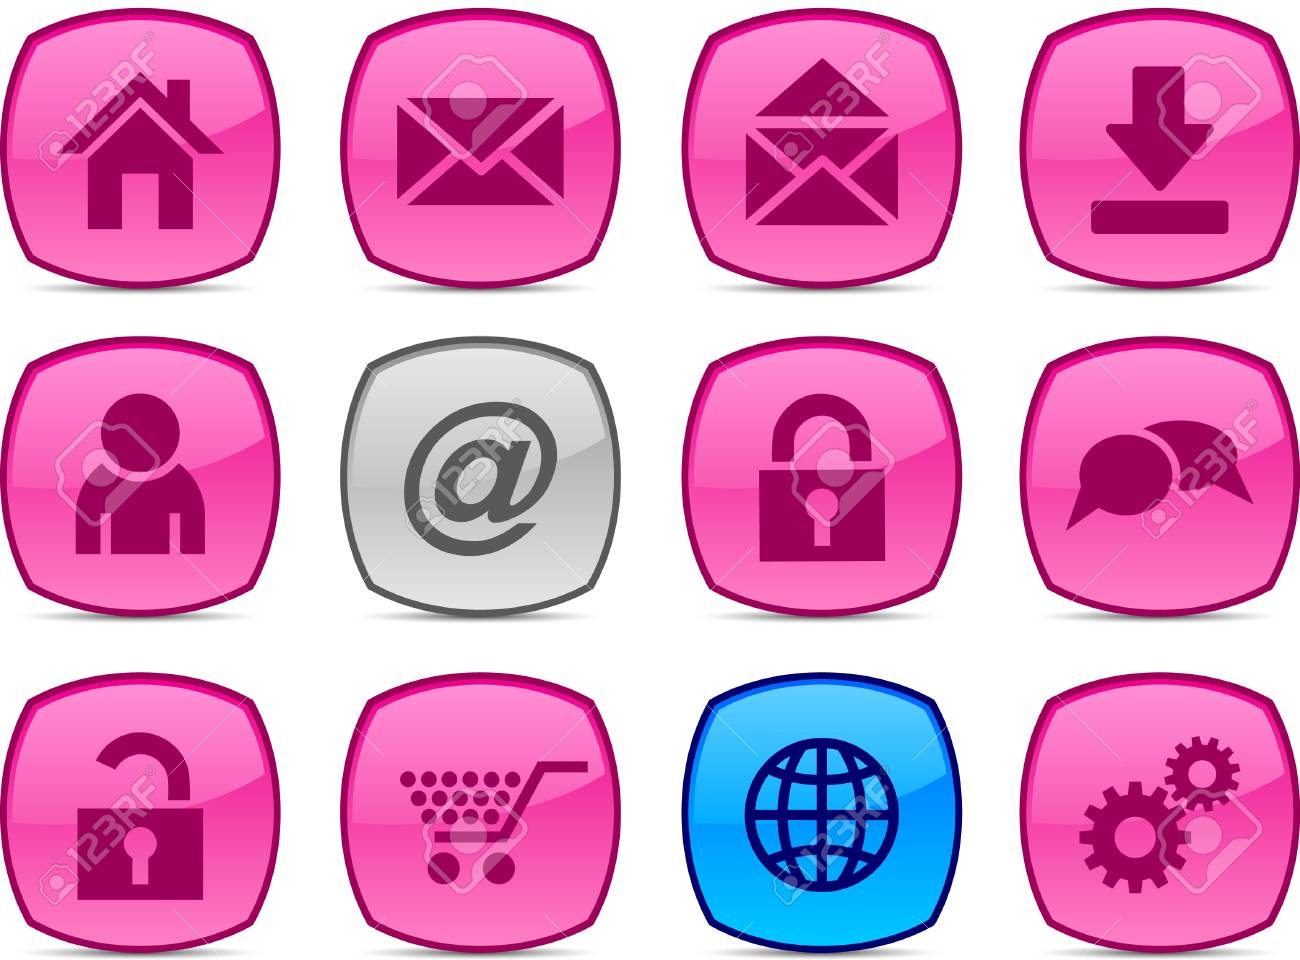 web glossy icons. Vector buttons. Stock Vector - 6313428